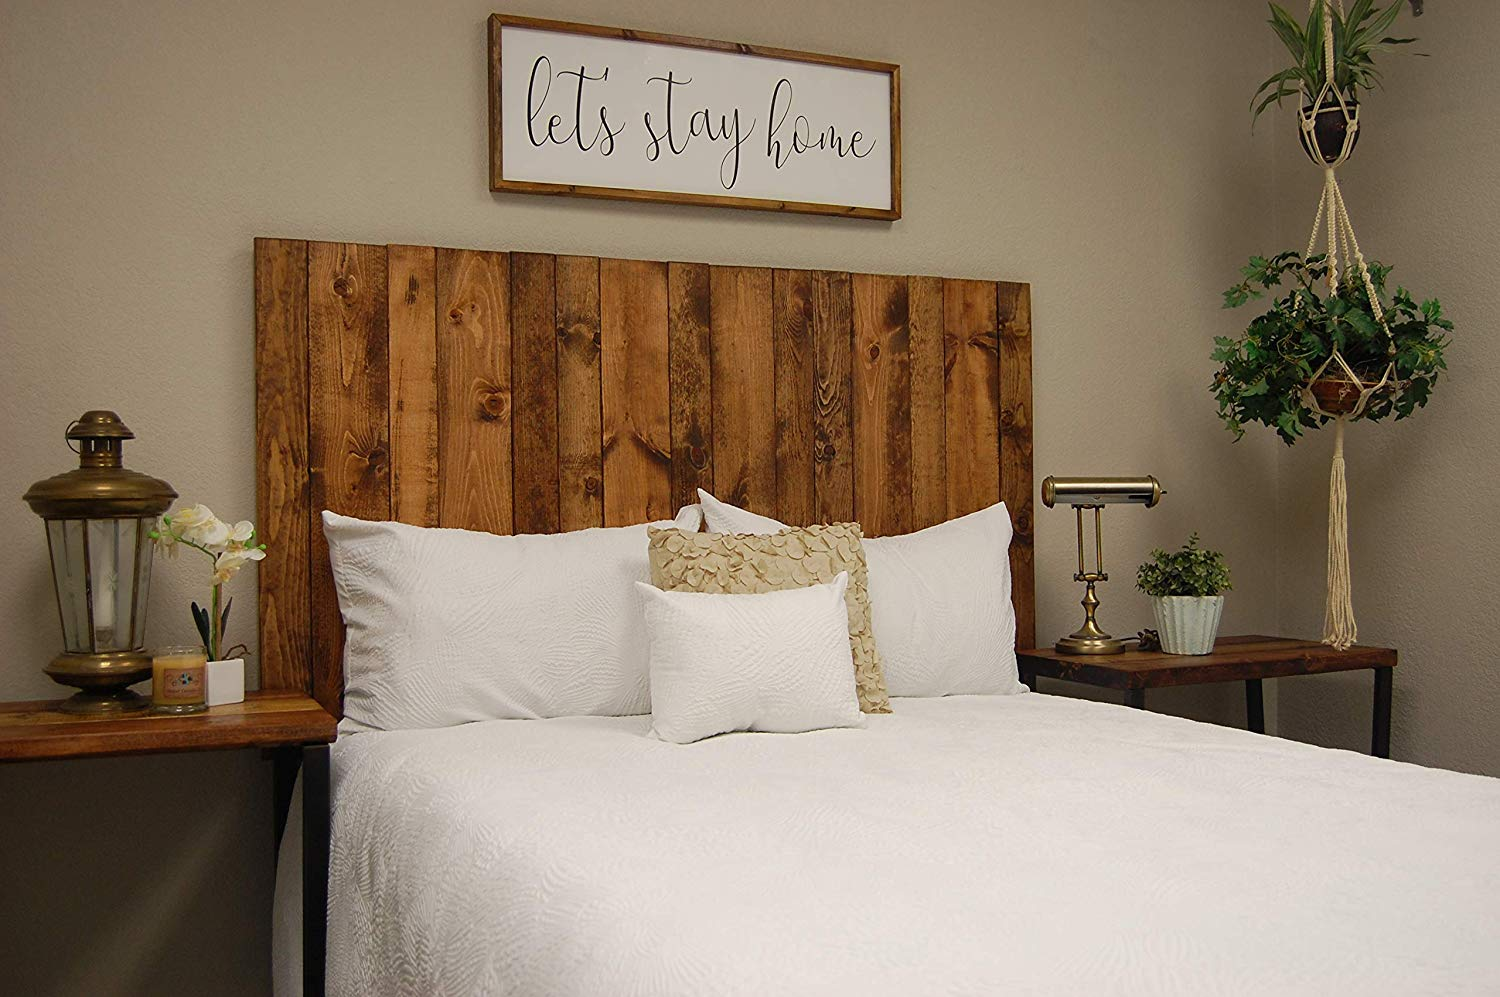 Honey Headboard King Size Stain, Hanger Style, Handcrafted. Mounts on Wall. Easy Installation